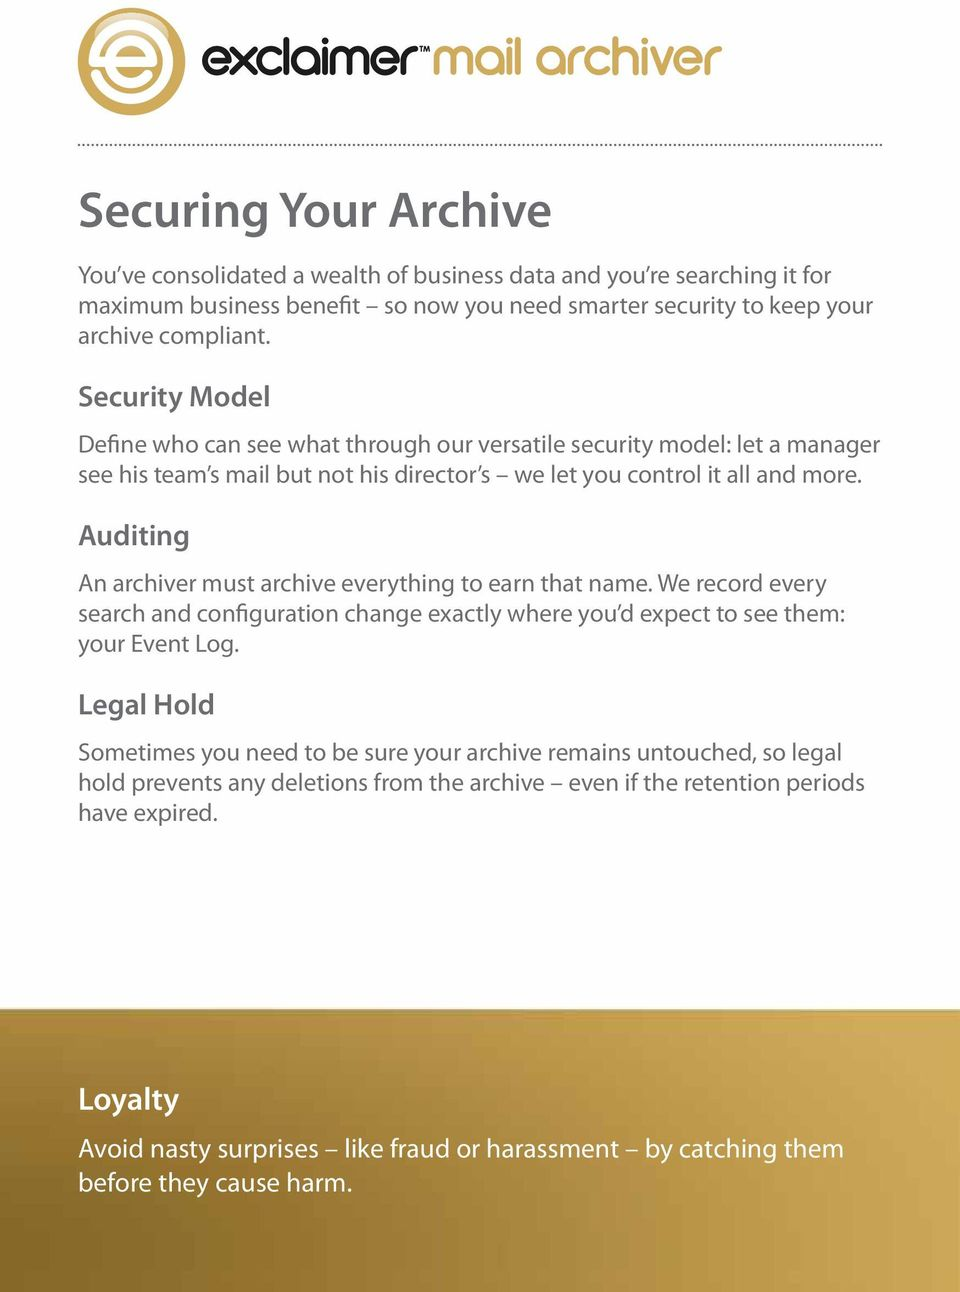 Auditing An archiver must archive everything to earn that name. We record every search and configuration change exactly where you d expect to see them: your Event Log.